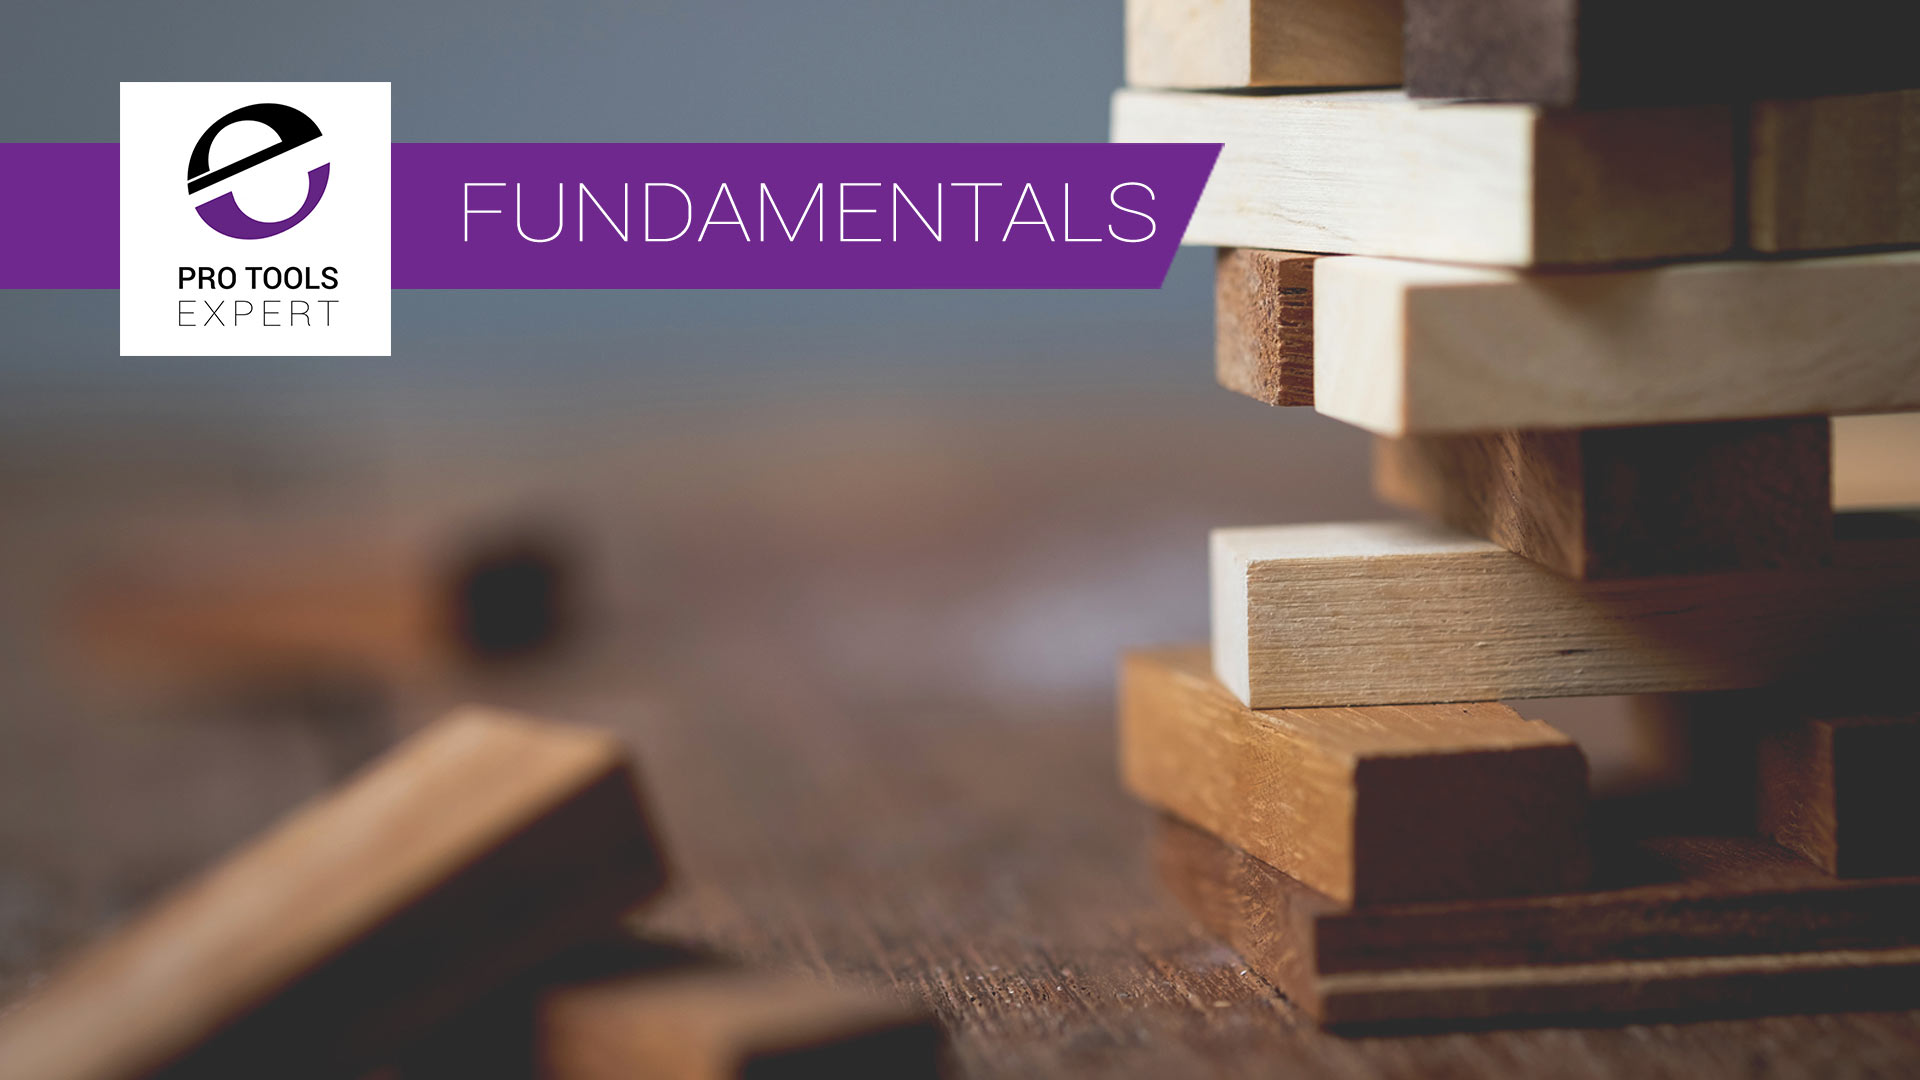 Pro-Tools-Expert-Fundamentals-5-Pro-Tools-Fundamentals---If-You-Don't-Know-Them-Then-Learn-Them-First.jpg